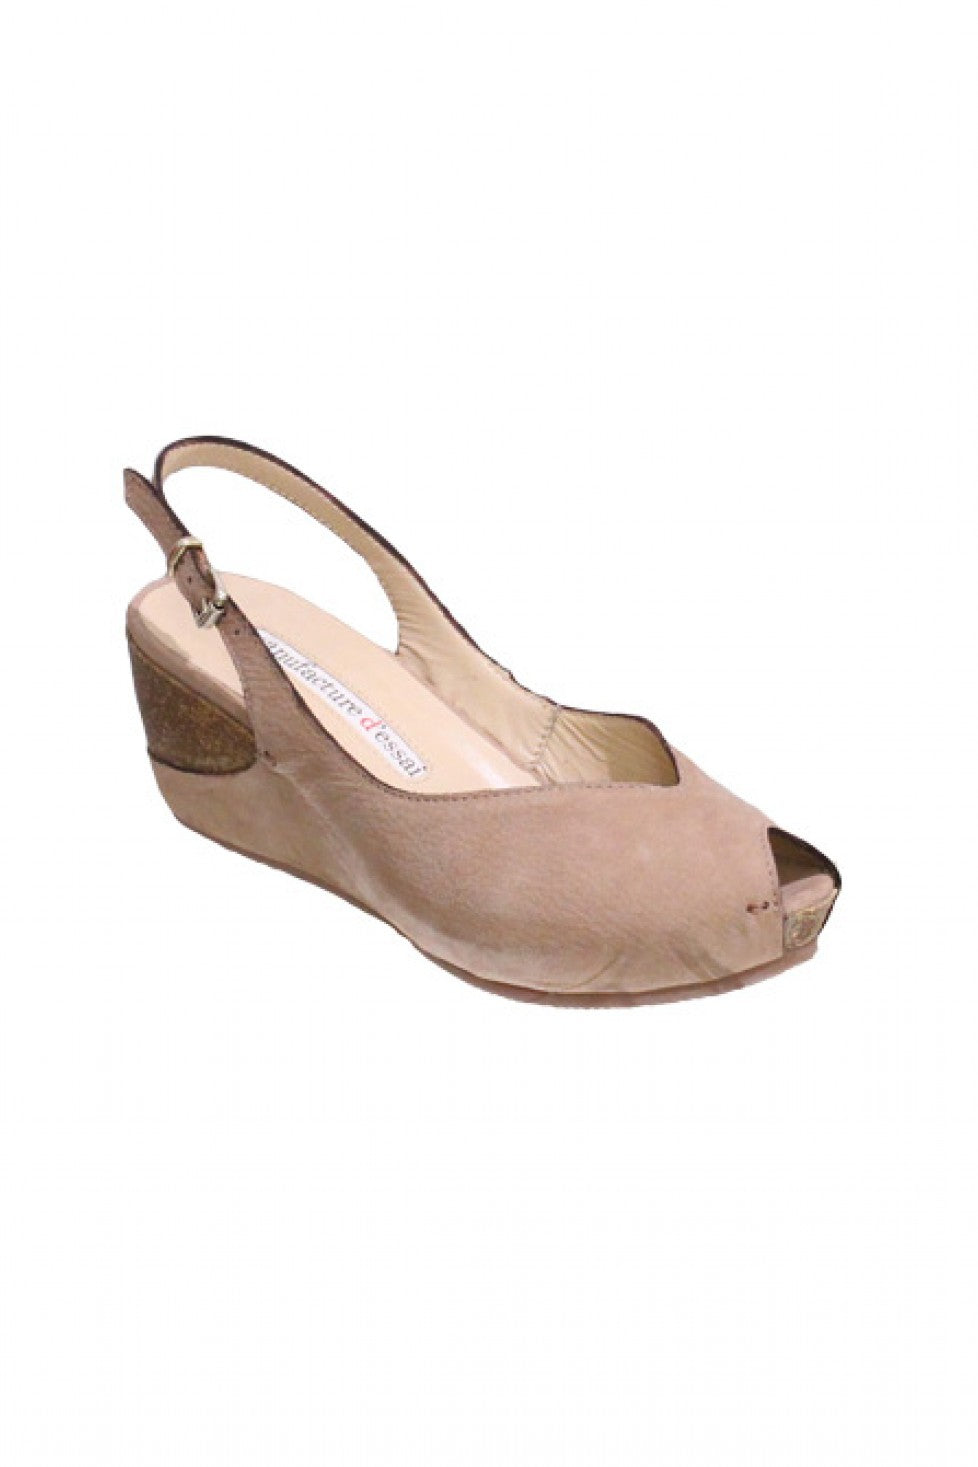 Natural Beige Maunfacture D̩ssai Wedge with Sling Back Style and Grace